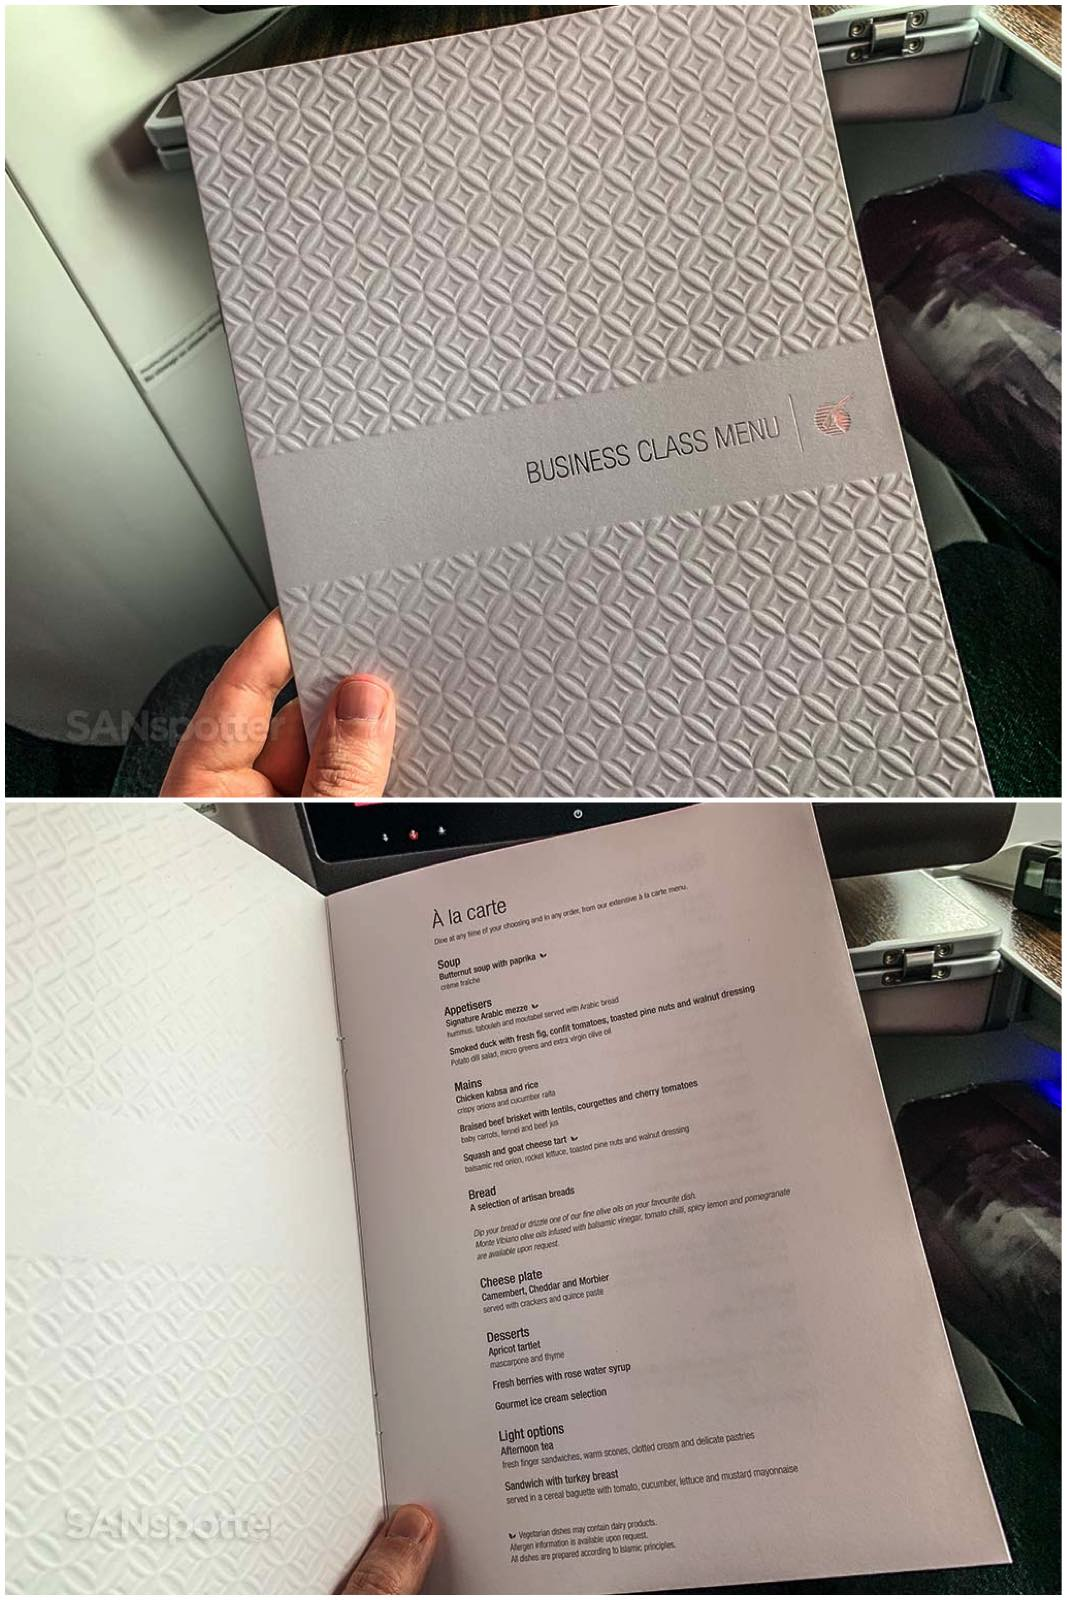 Qatar Airways business class menu